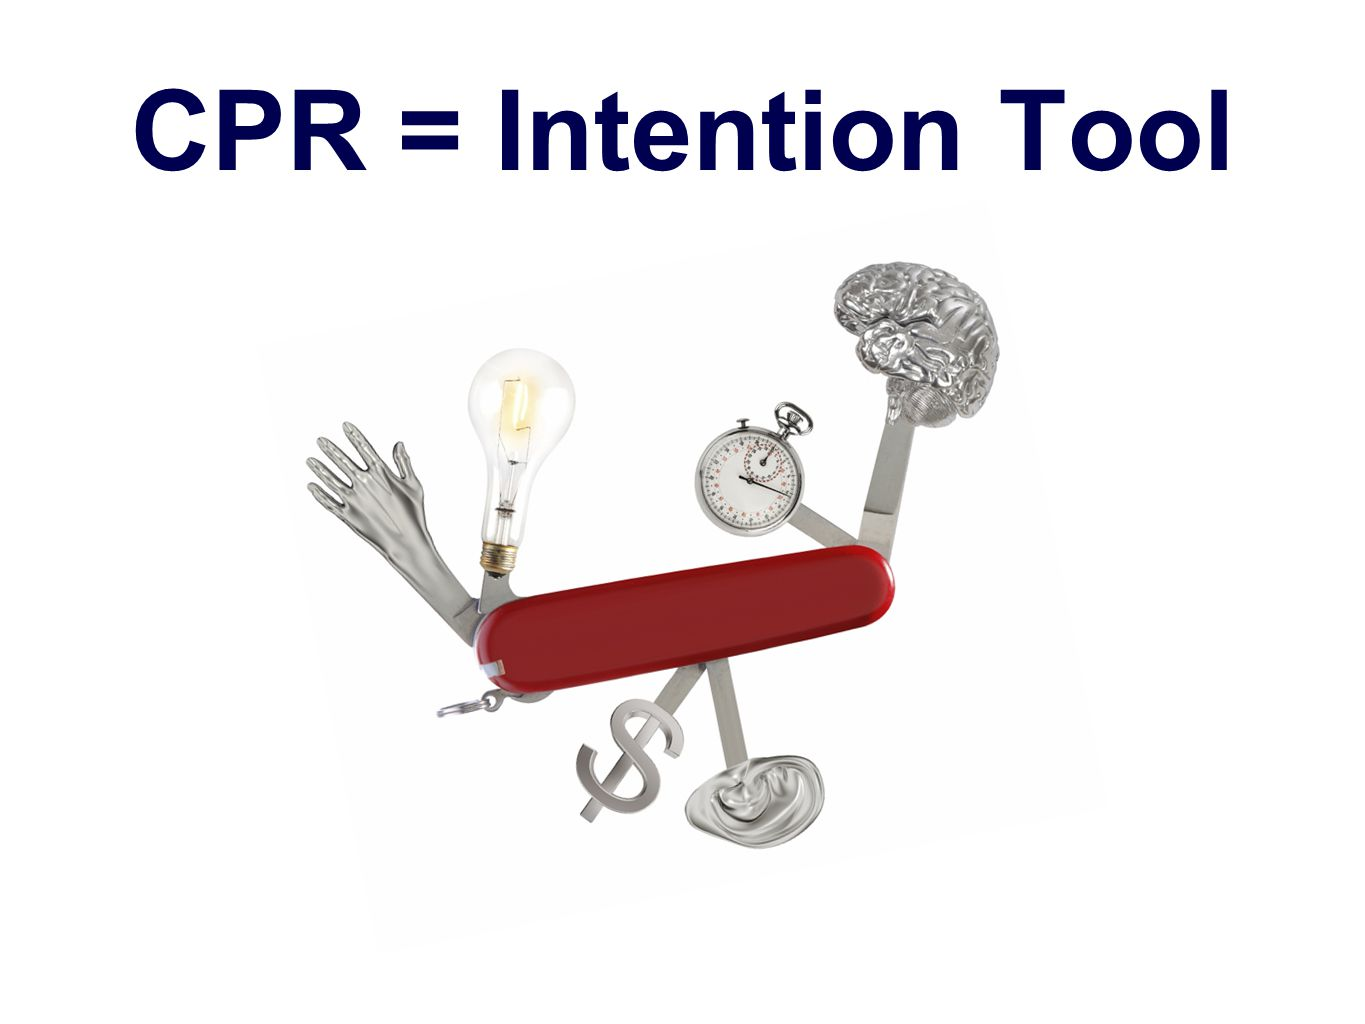 CPR = Intention Tool